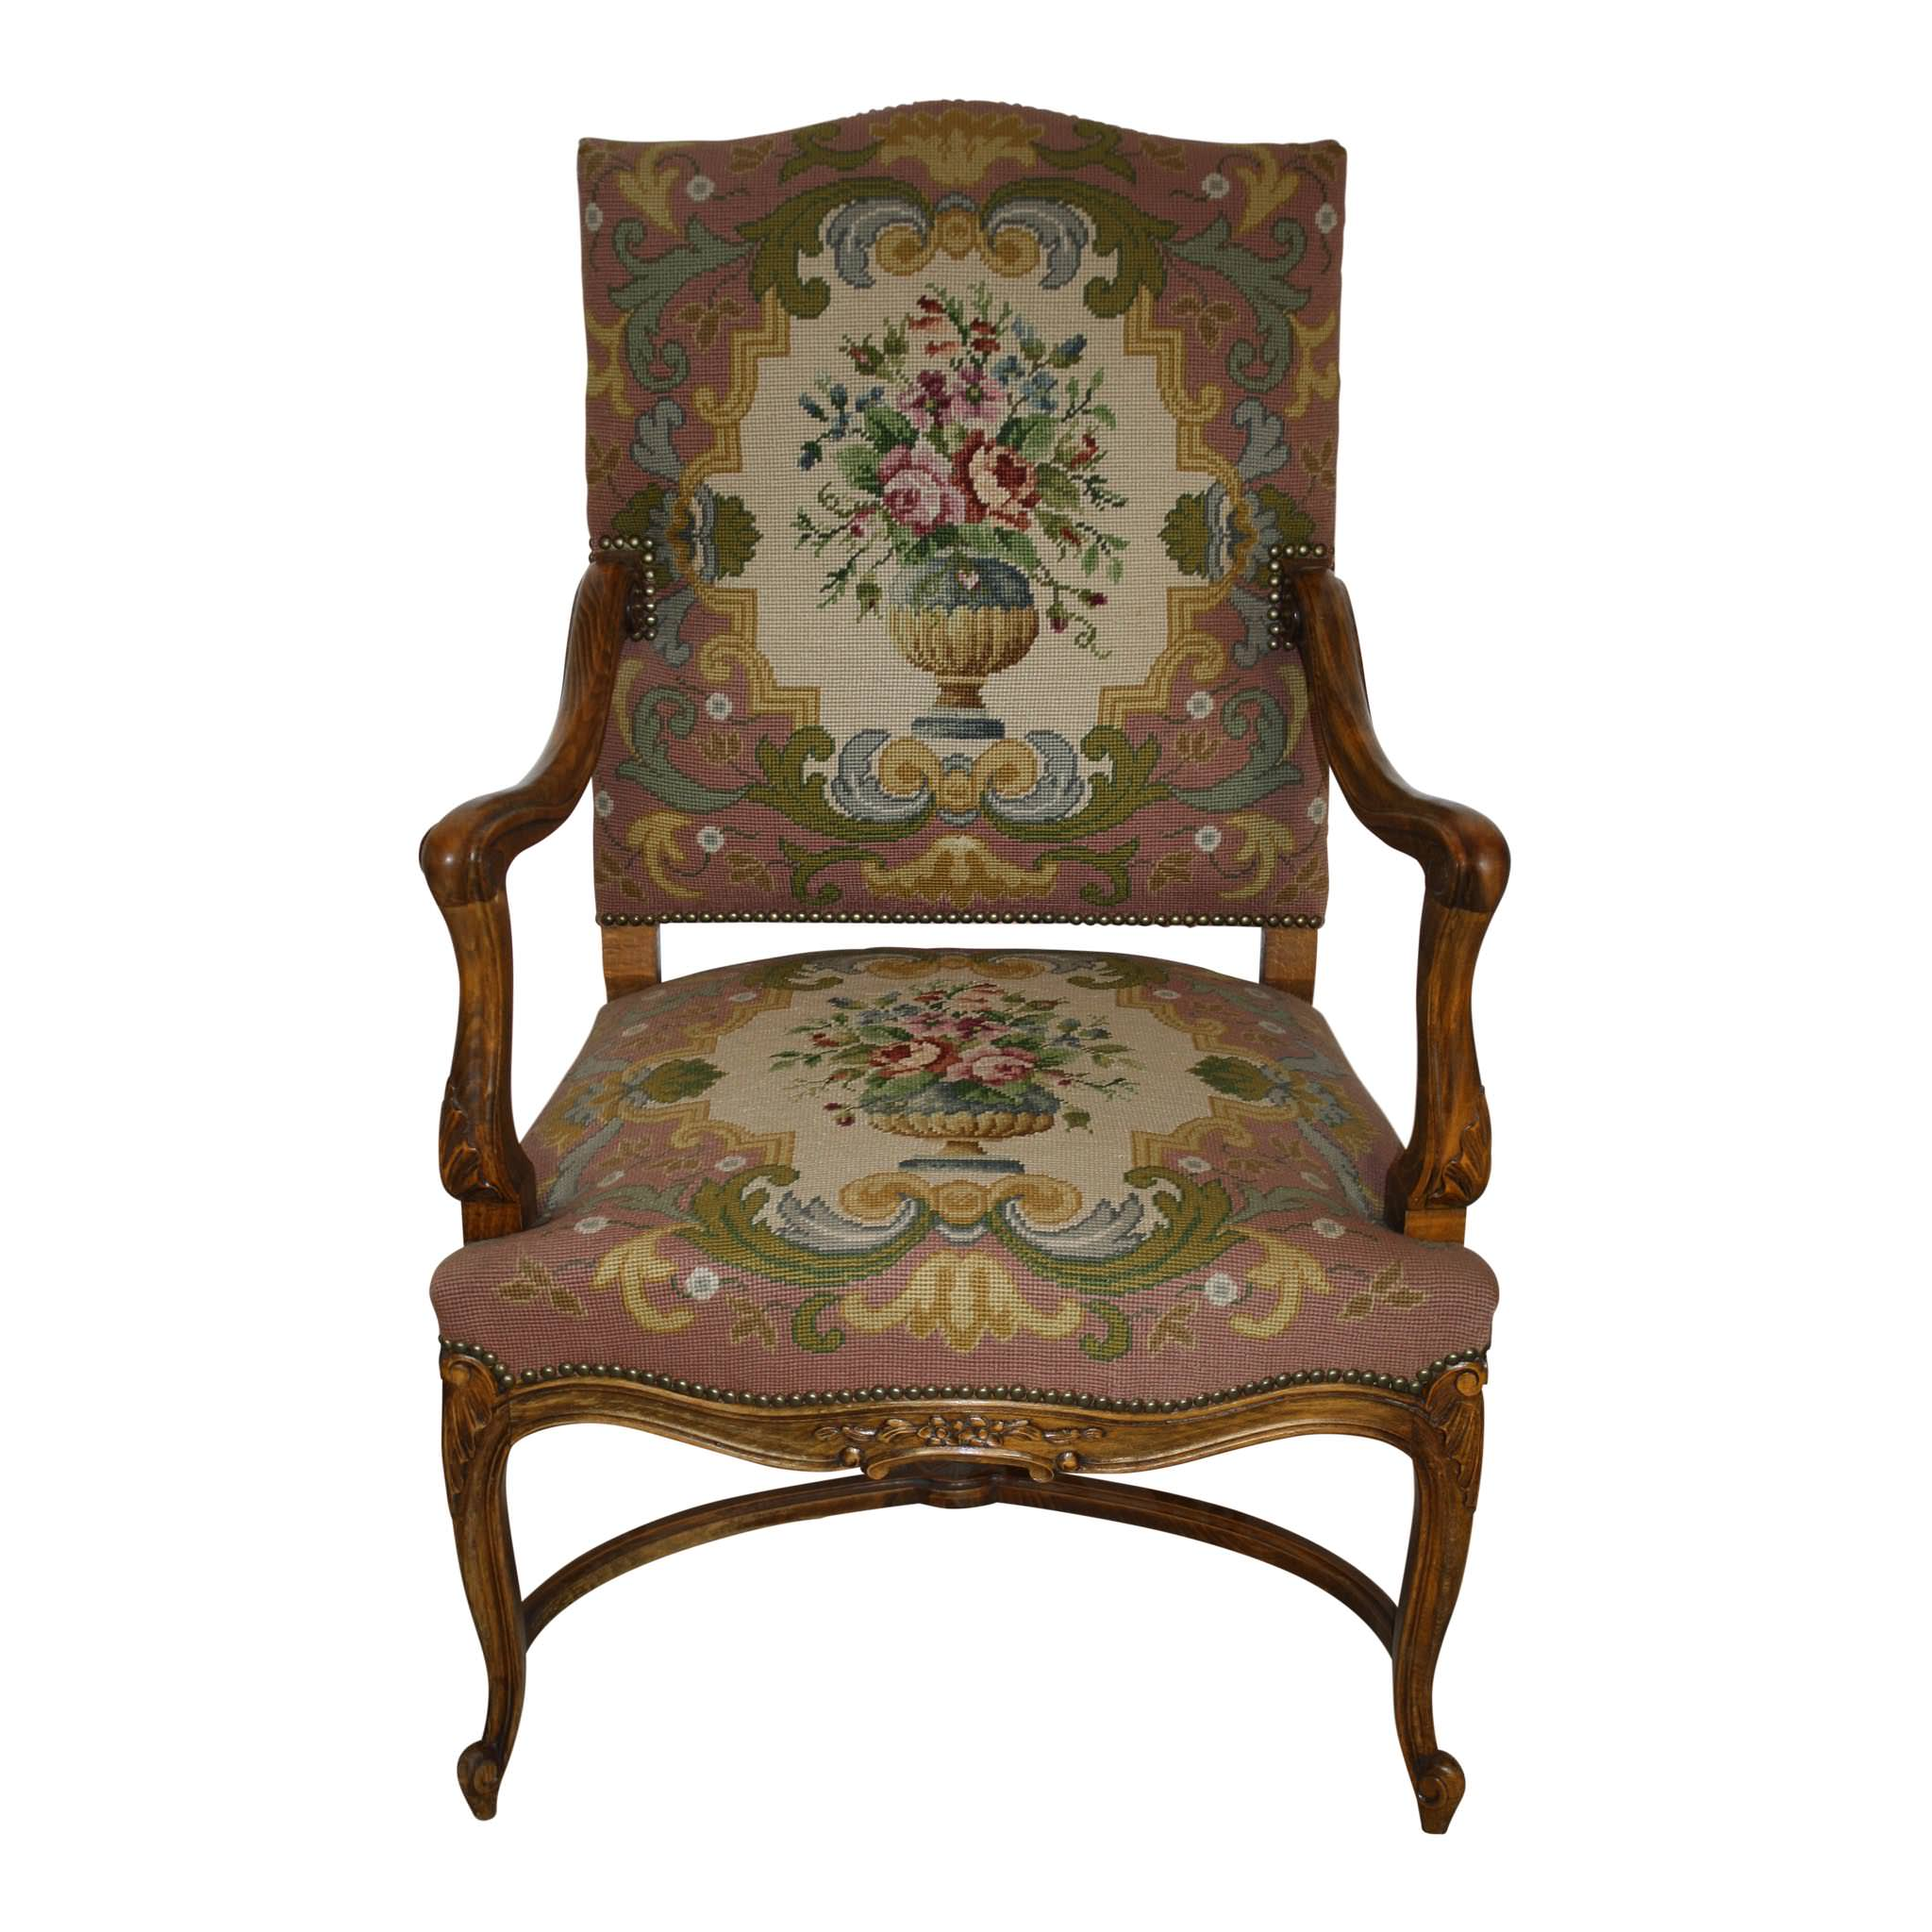 Louis XV French Walnut Fauteuil Needlepoint Armchair